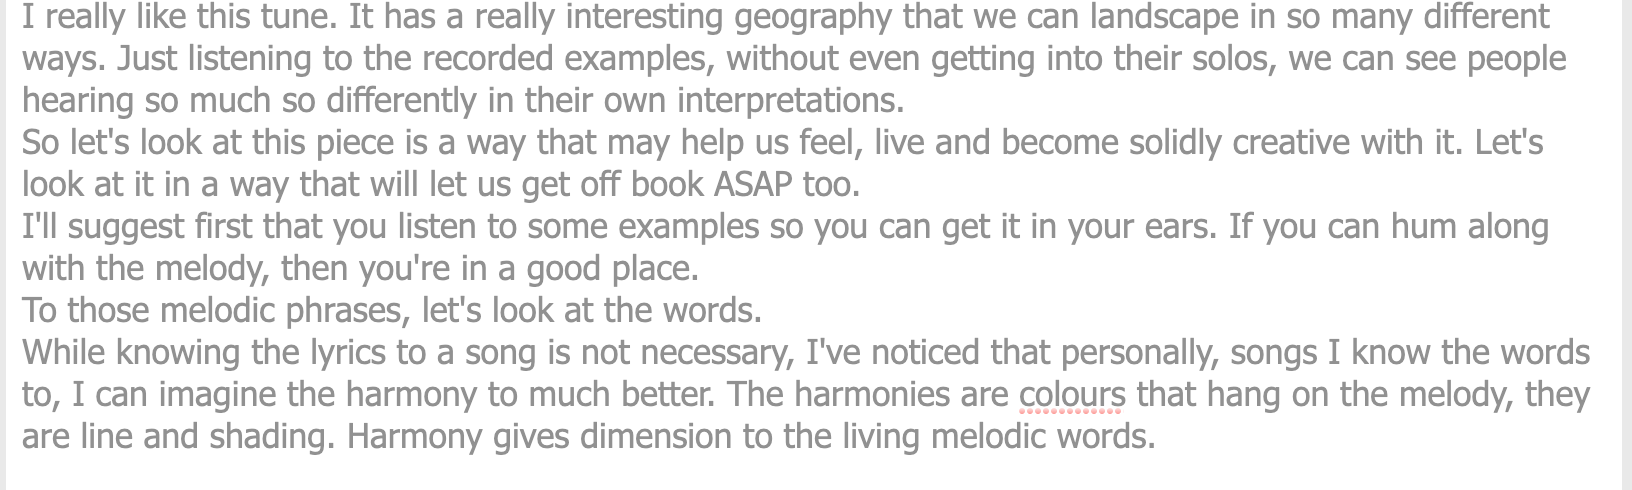 The Three Week Immersion: Study group for a tune based practice routine-screen-shot-2021-09-20-11-45-31-pm-png